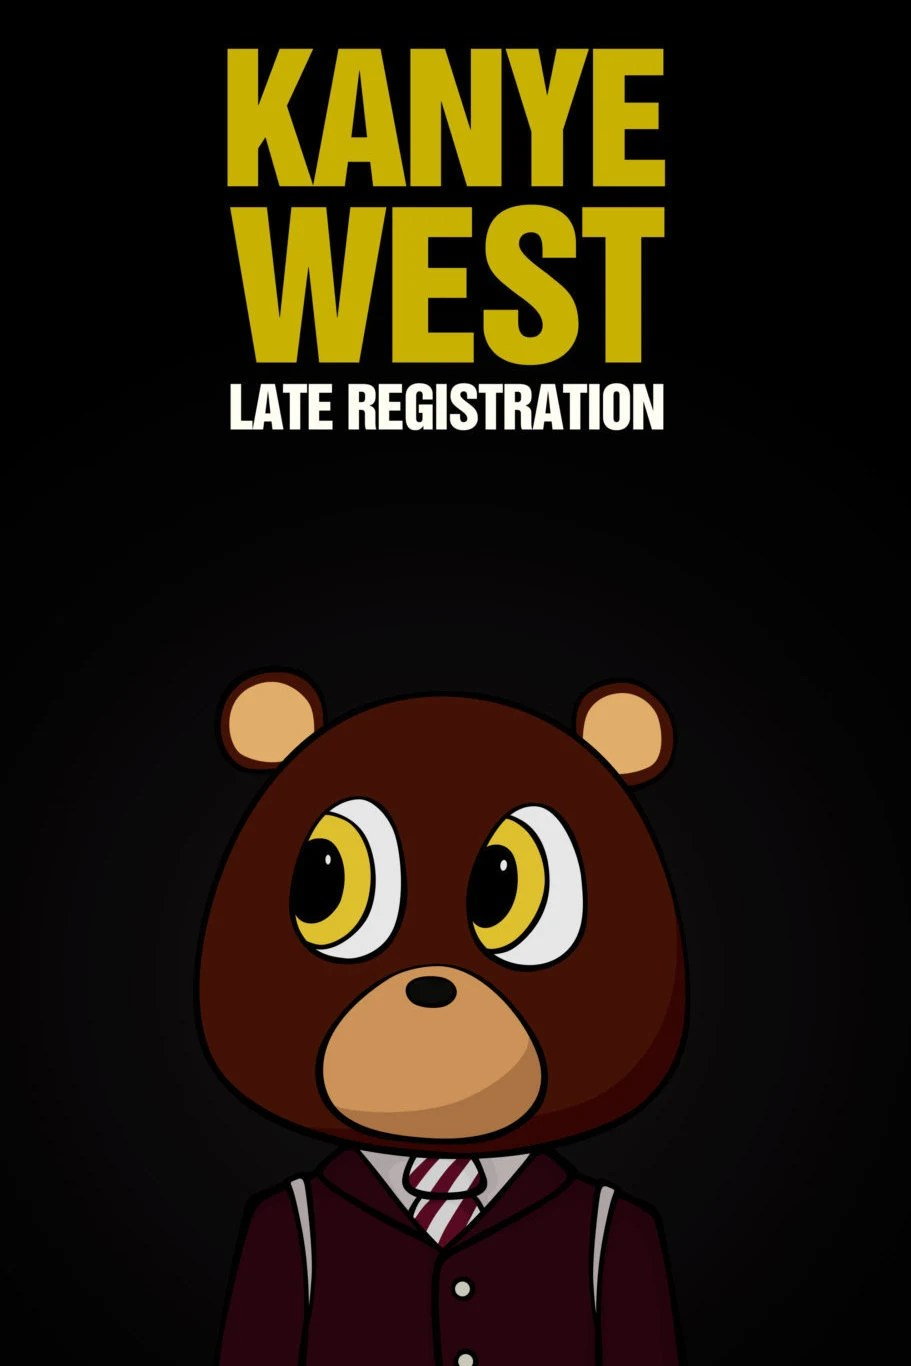 Kanye West Late Registration Artwork